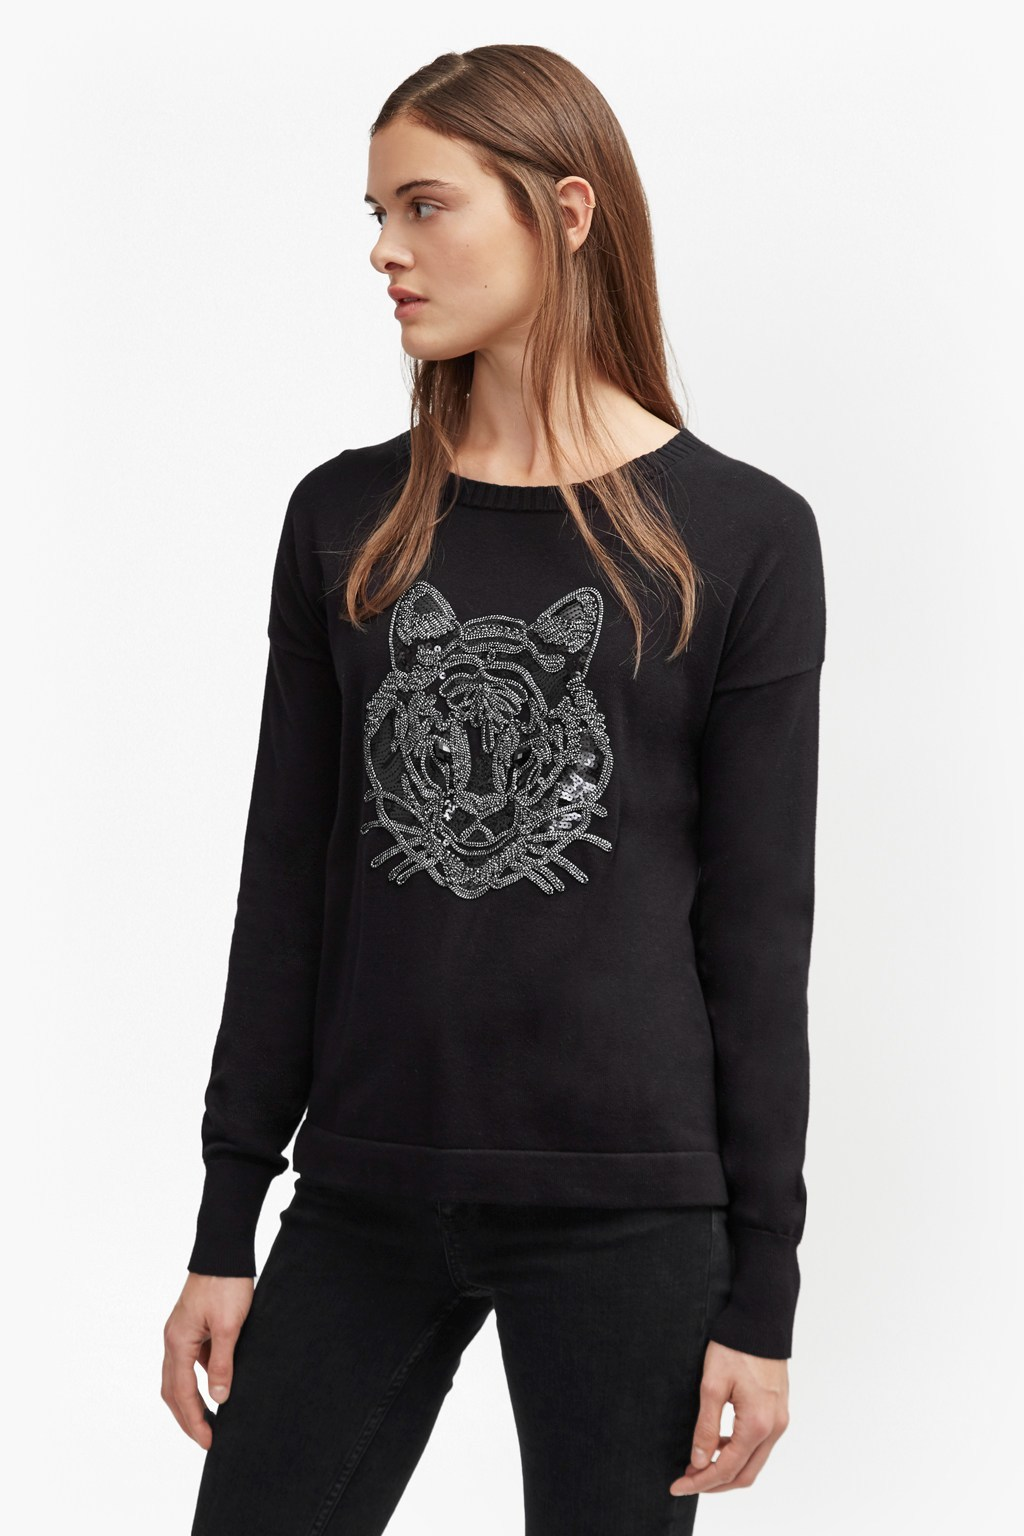 Animal Knit Tiger Sequin Jumper Black - style: standard; secondary colour: mid grey; predominant colour: black; occasions: casual; length: standard; fibres: cotton - 100%; fit: standard fit; neckline: crew; sleeve length: long sleeve; sleeve style: standard; texture group: knits/crochet; pattern type: knitted - fine stitch; pattern: patterned/print; multicoloured: multicoloured; season: a/w 2016; wardrobe: highlight